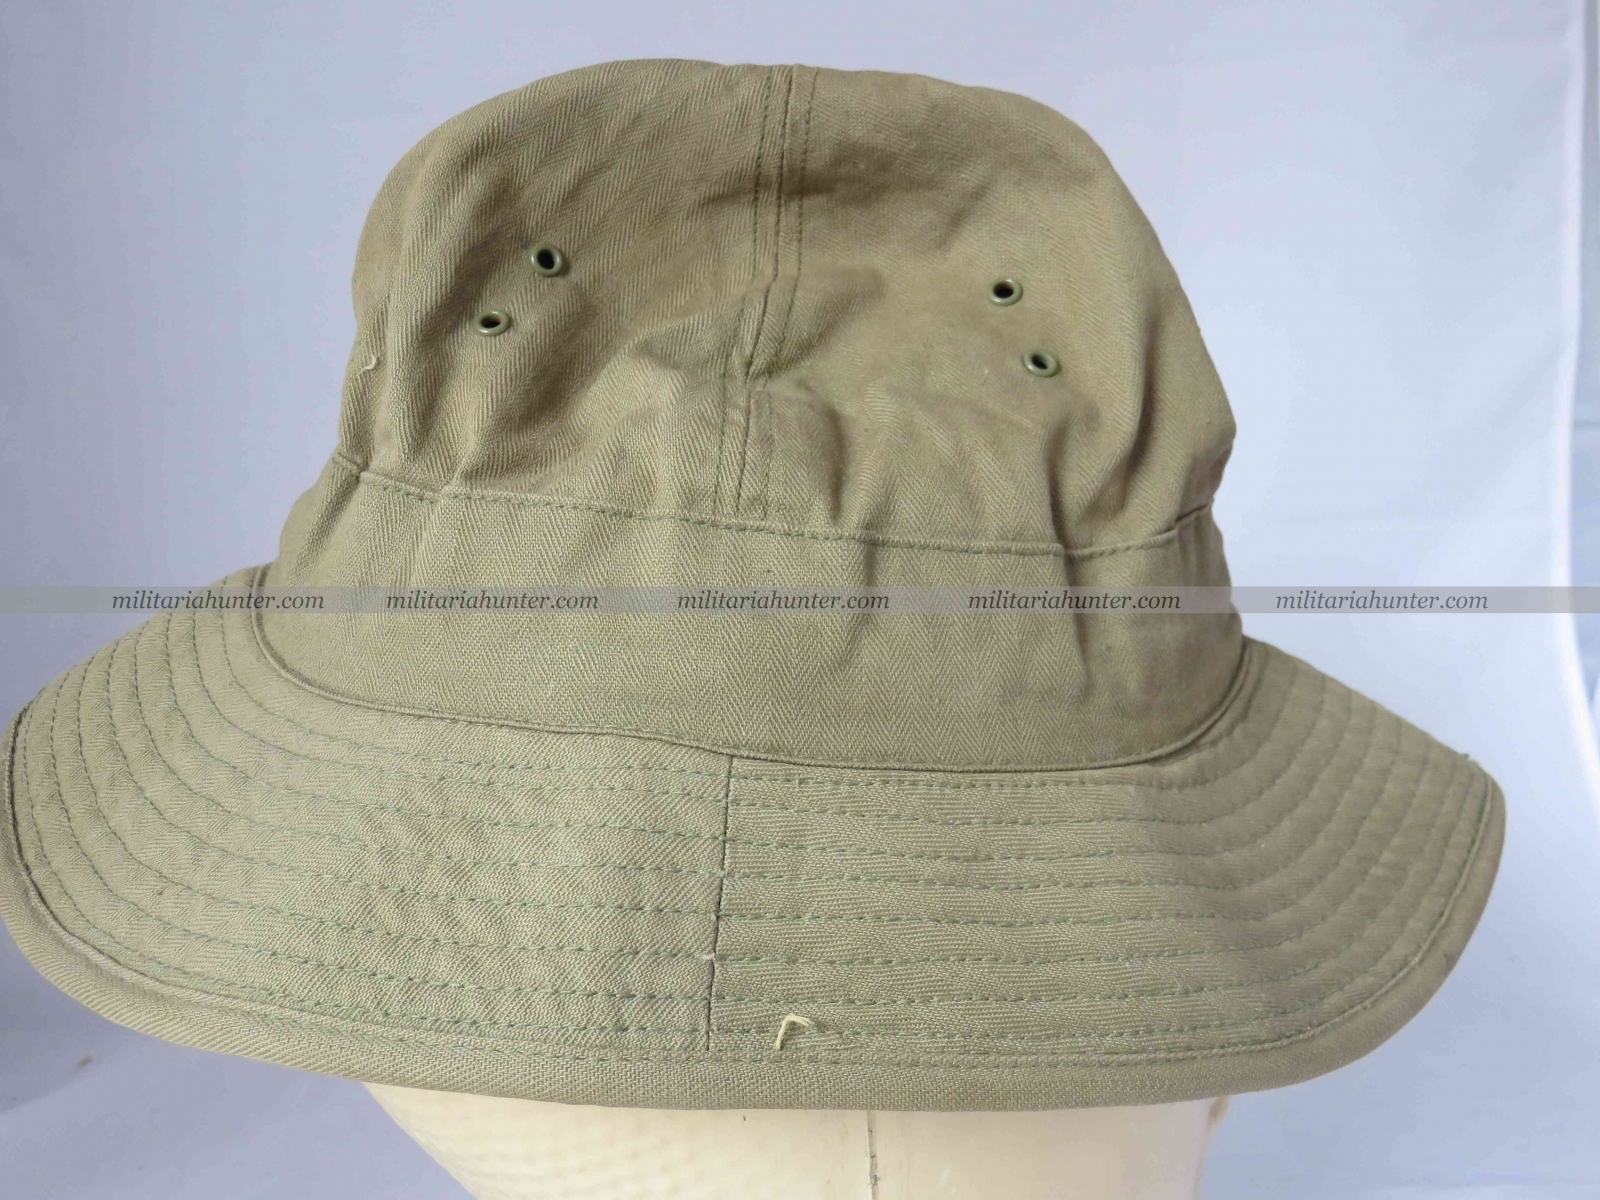 militaria : Us ww2 HBT Boonie Hat / Jungle Hat with laundry number